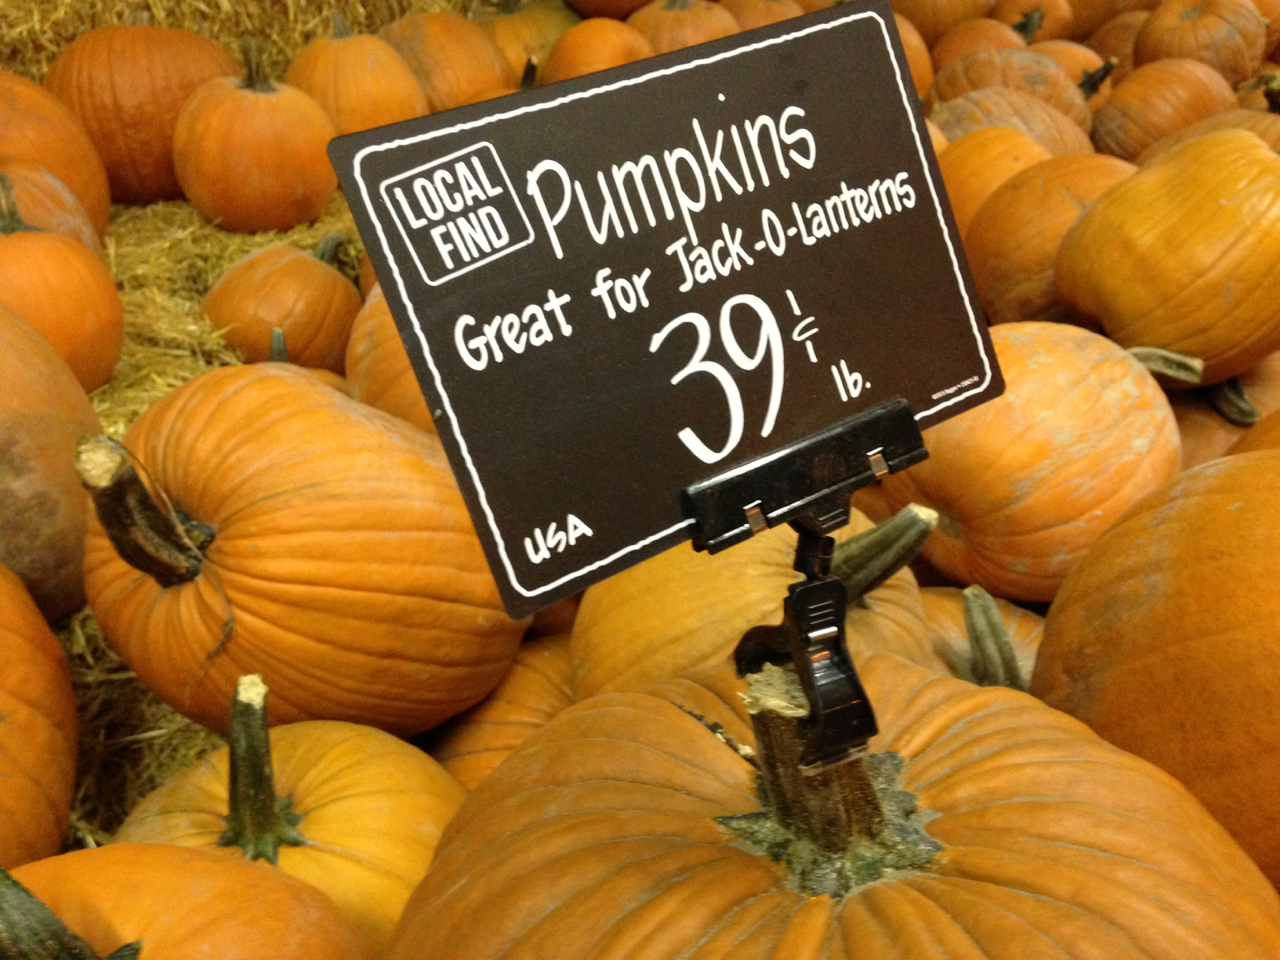 pumpkins-39-cents